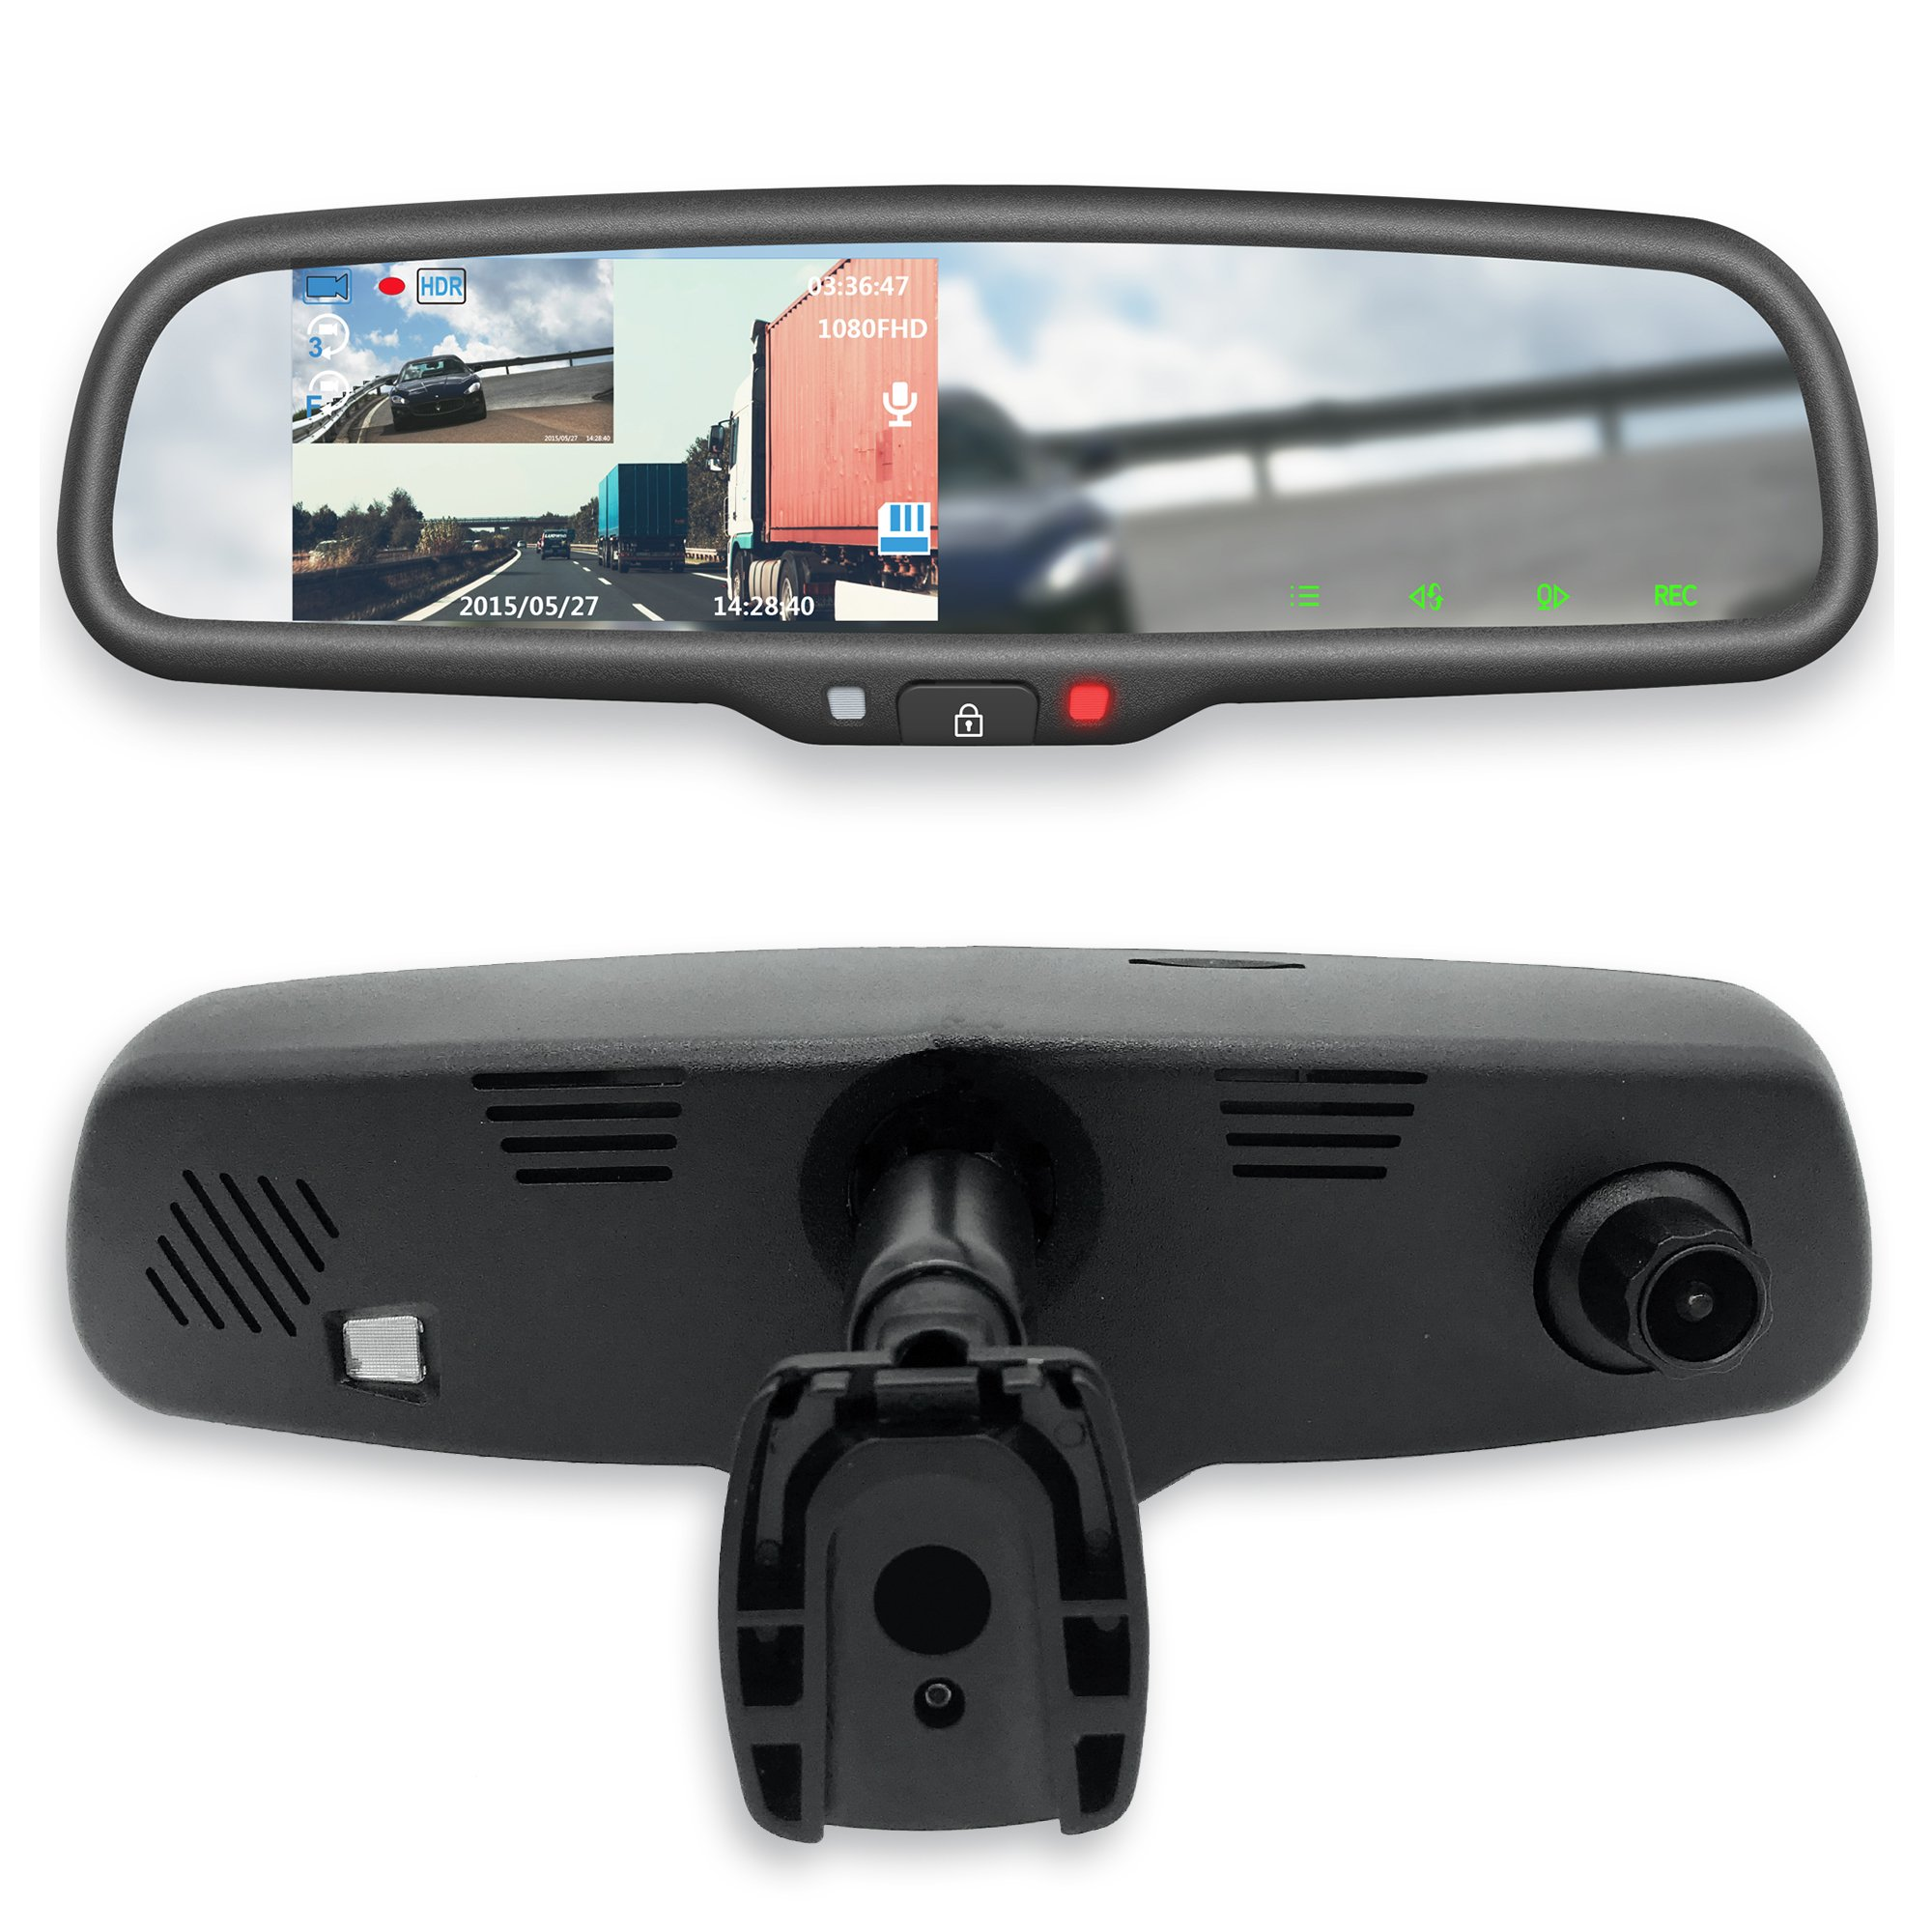 Master Tailgaters 4.3'' LCD Rear View Mirror with 1080P 60FPS HD DVR Recorder with Superior Night Vision + Wifi